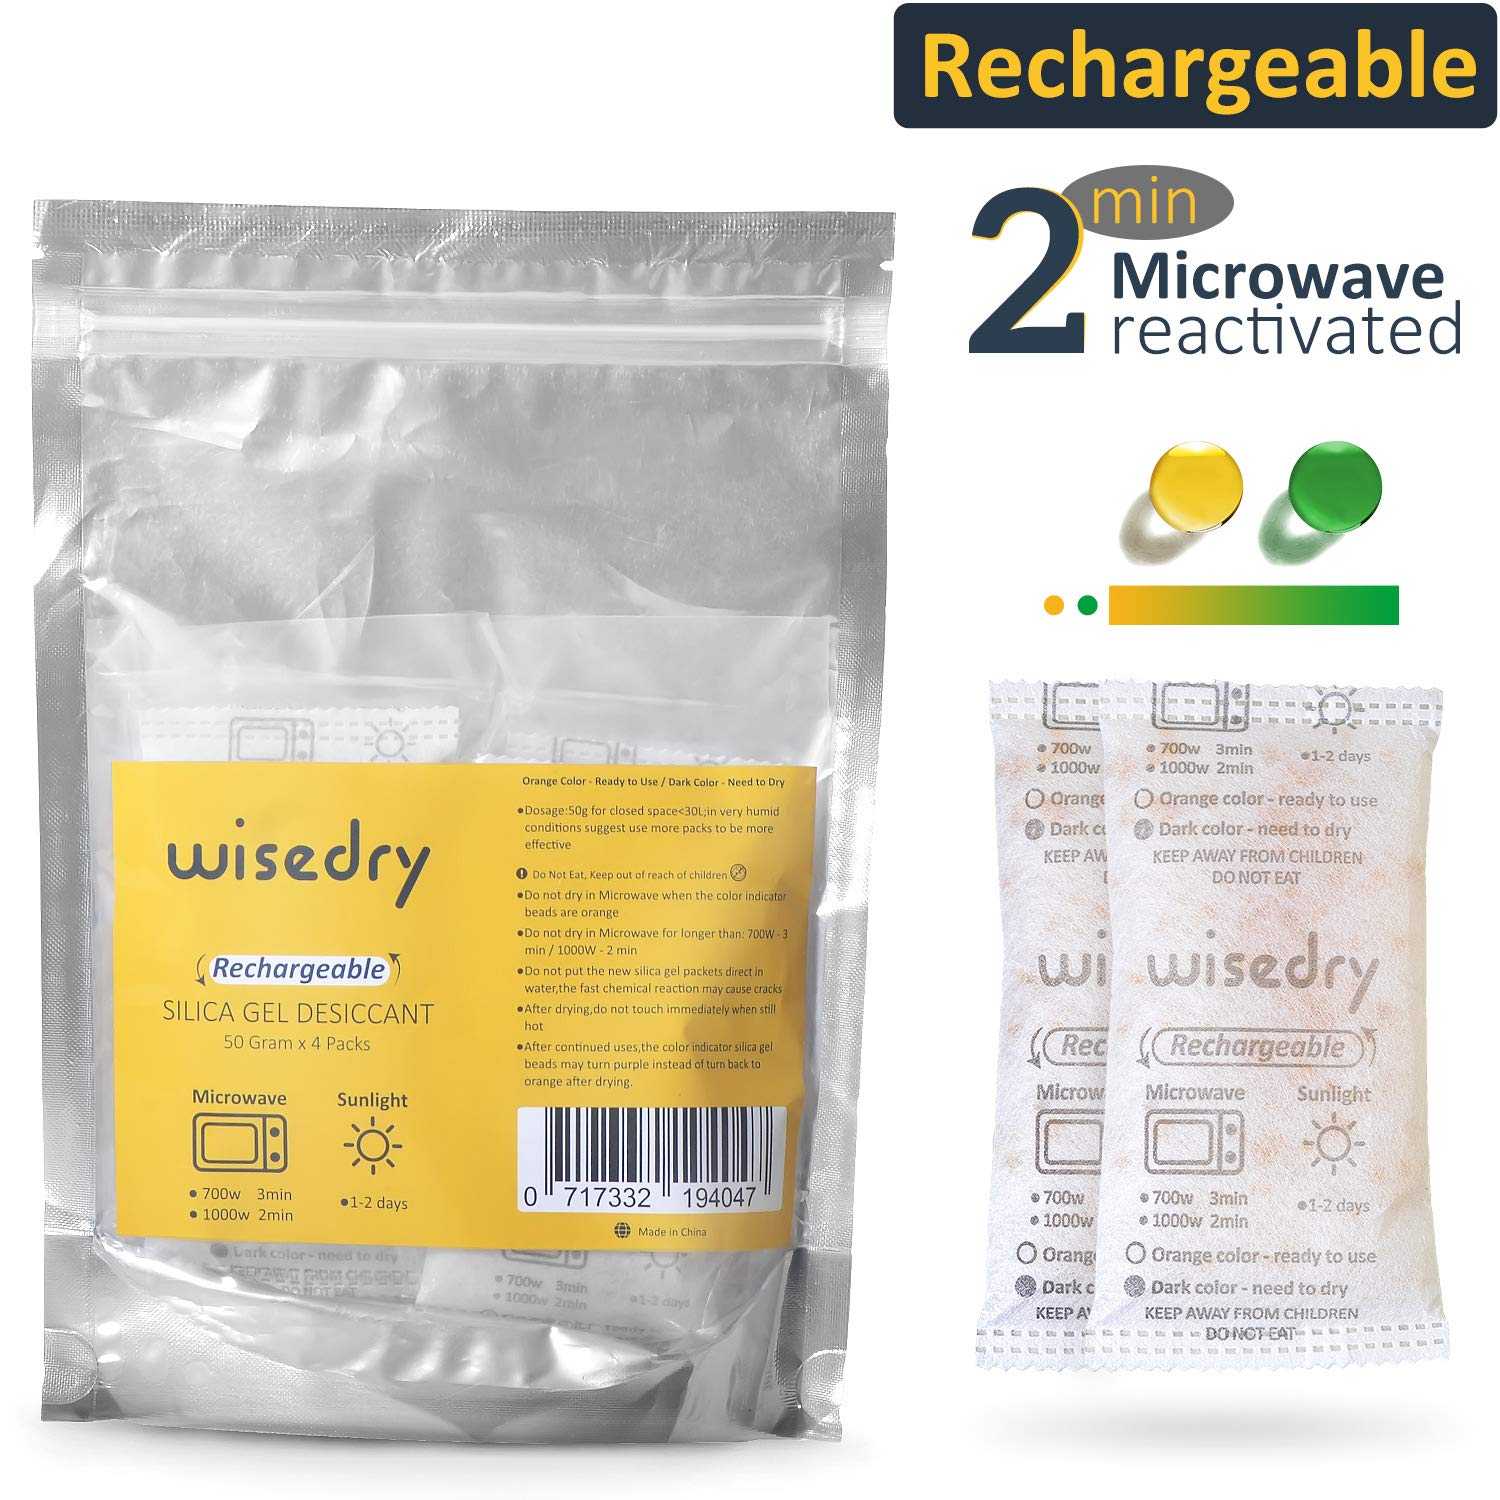 wisedry 50 Gram [4PACKS] Microwave Fast Reactivate in 2MINS Silica Gel Packets Desiccant Packs Reusable Moisture Absorber for Closet Gun Safes Bathroom Bedroom Basement Storage Color Indicating Viola Technology VB-50G